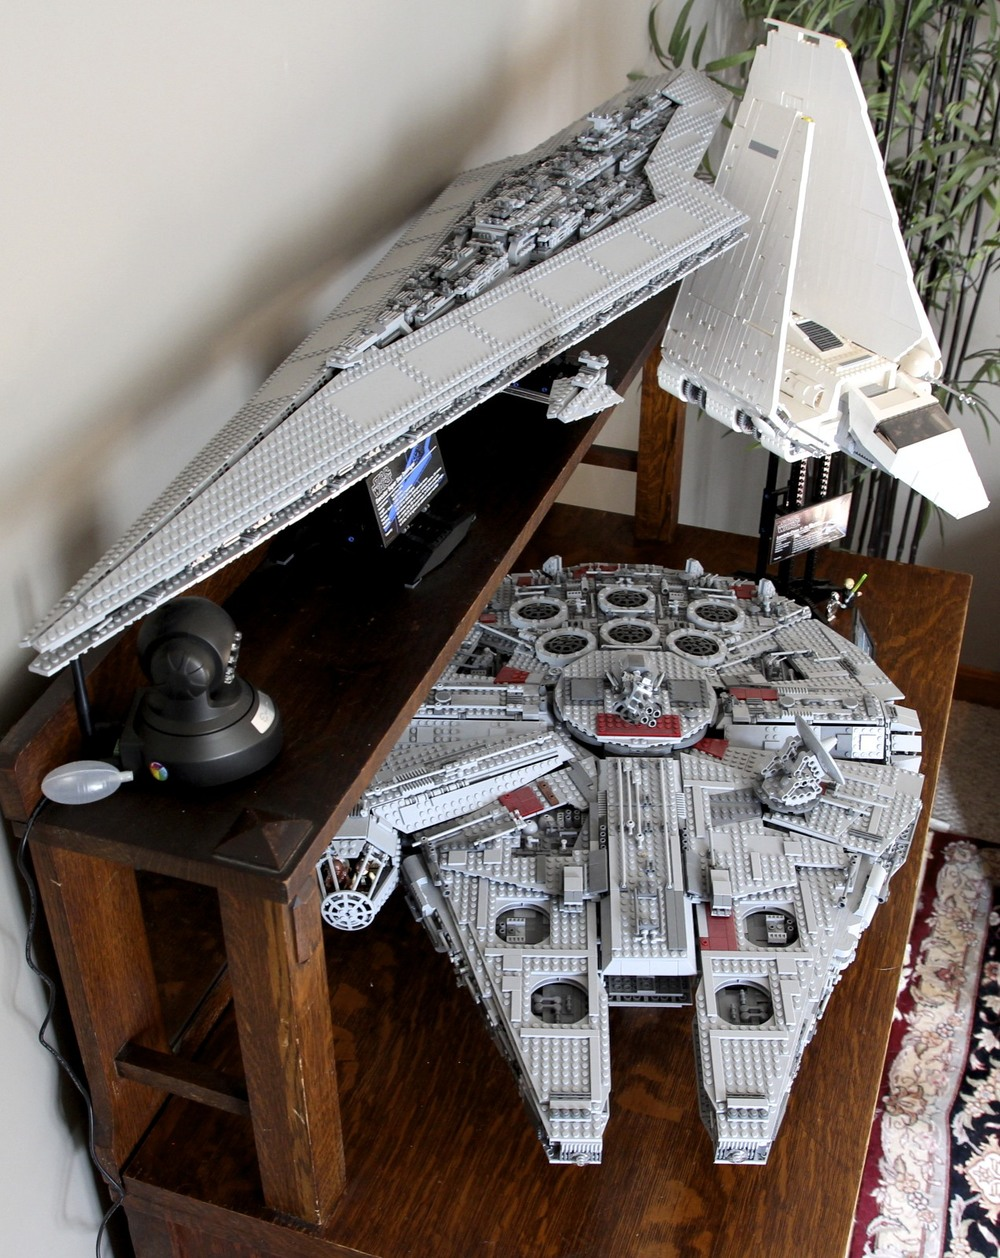 LEGO Super Star Destroyer, Millenium Falcon, Imperial Shuttle